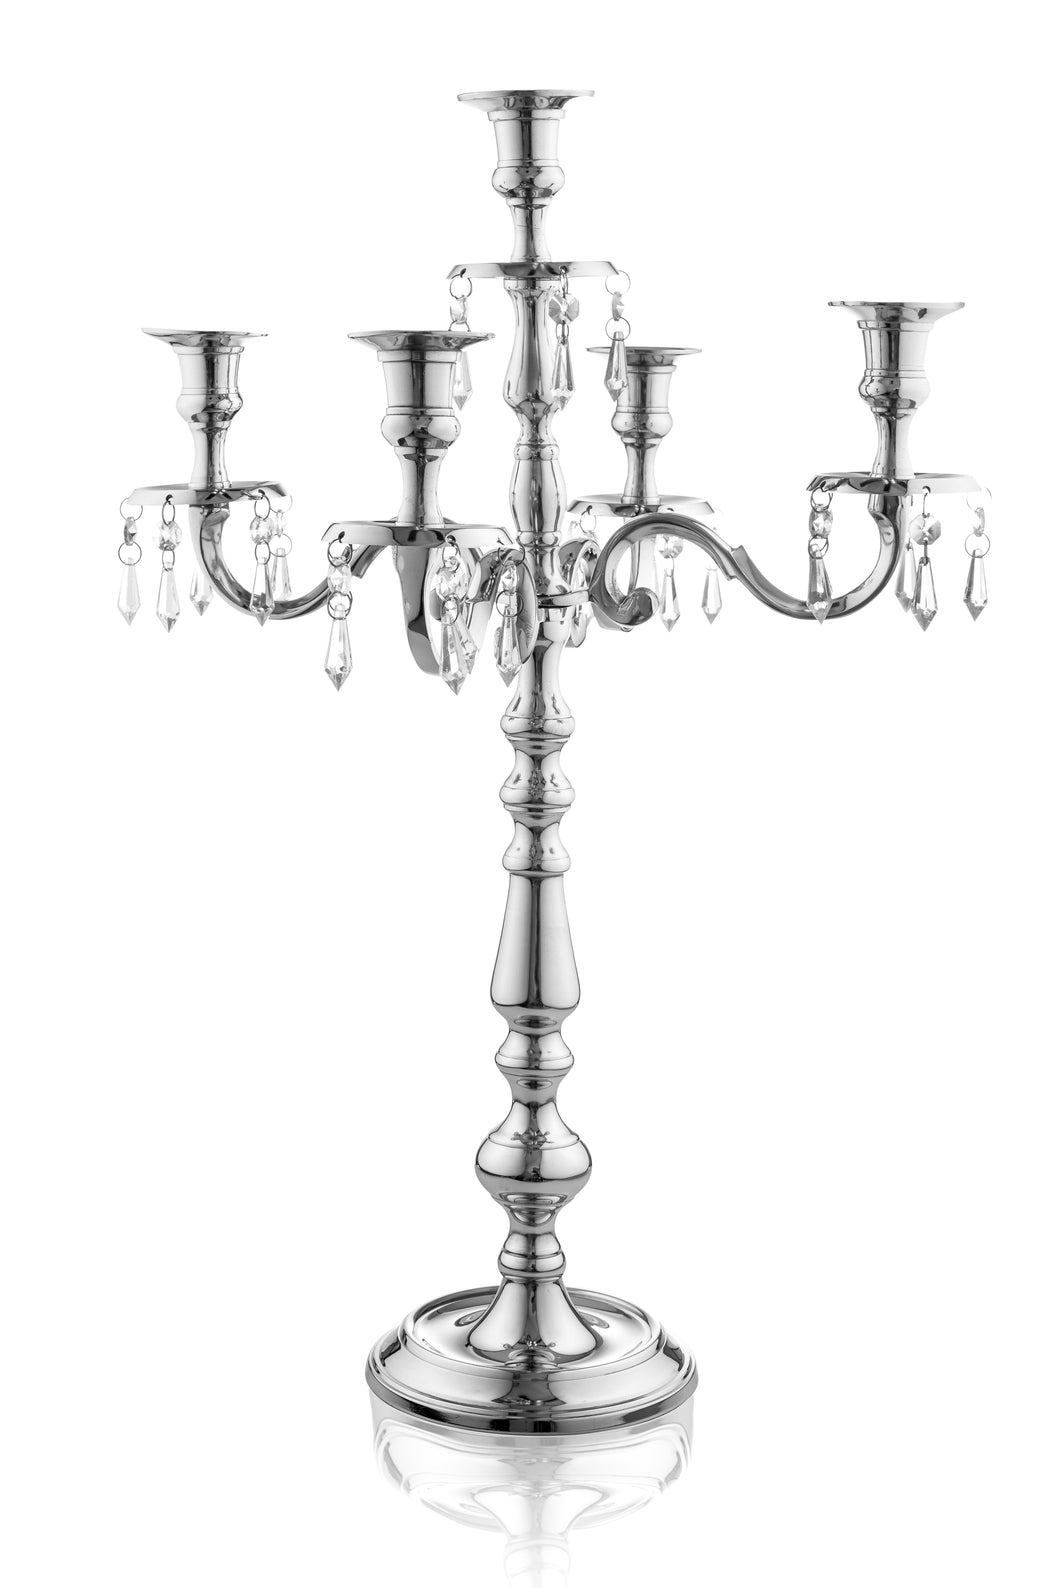 Traditional 24 Inch Silver Candelabras 5 Candle with Crystal Drops - Classic Elegant Design - Wedding, Dinner Party and Formal Event Centerpiece - Nickel Plated Aluminum, Dangling Acrylic Crystals